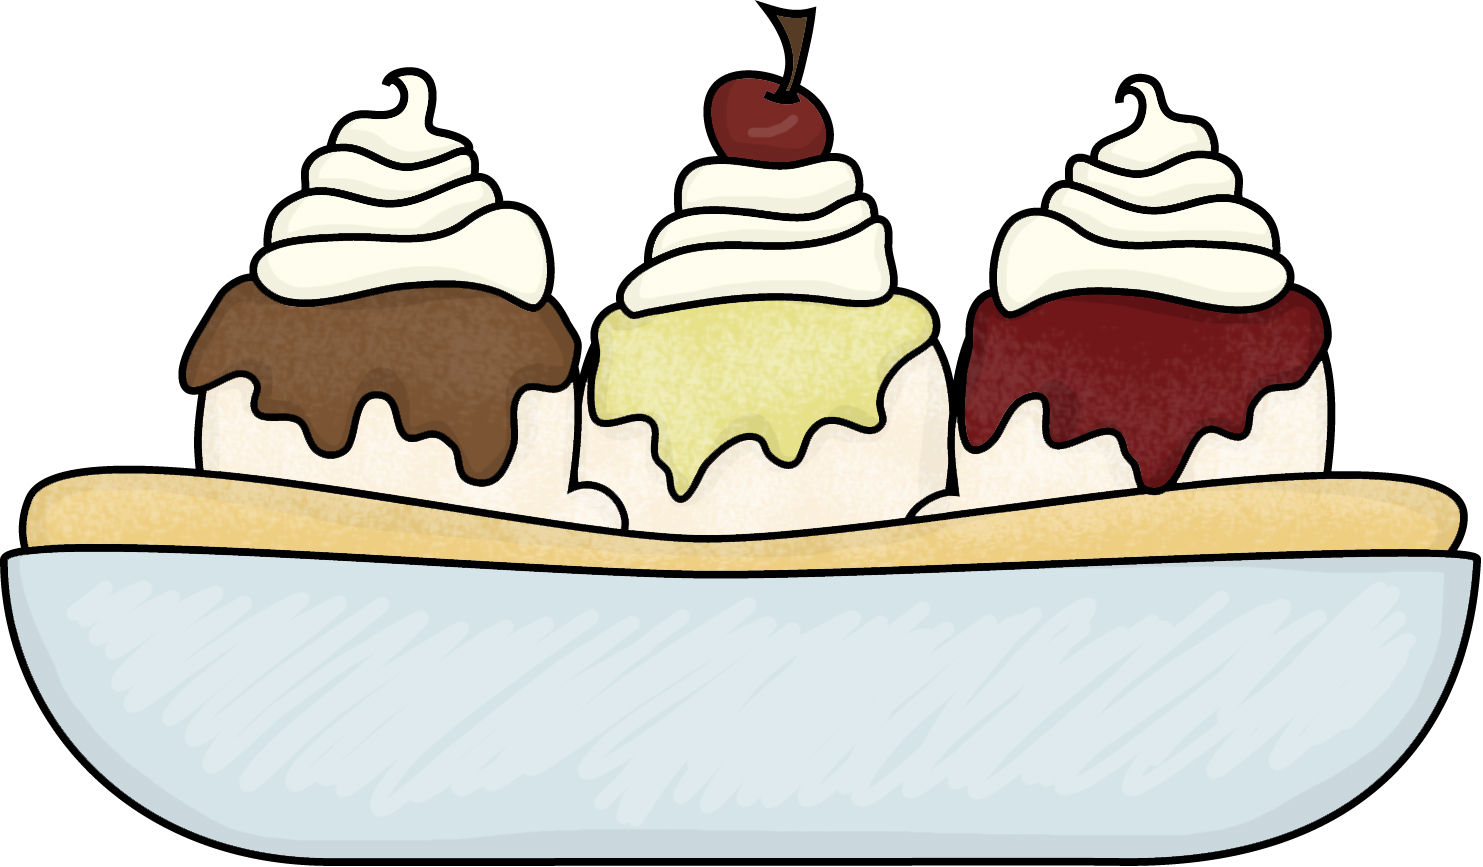 Ice Cream Bowl Clipart.